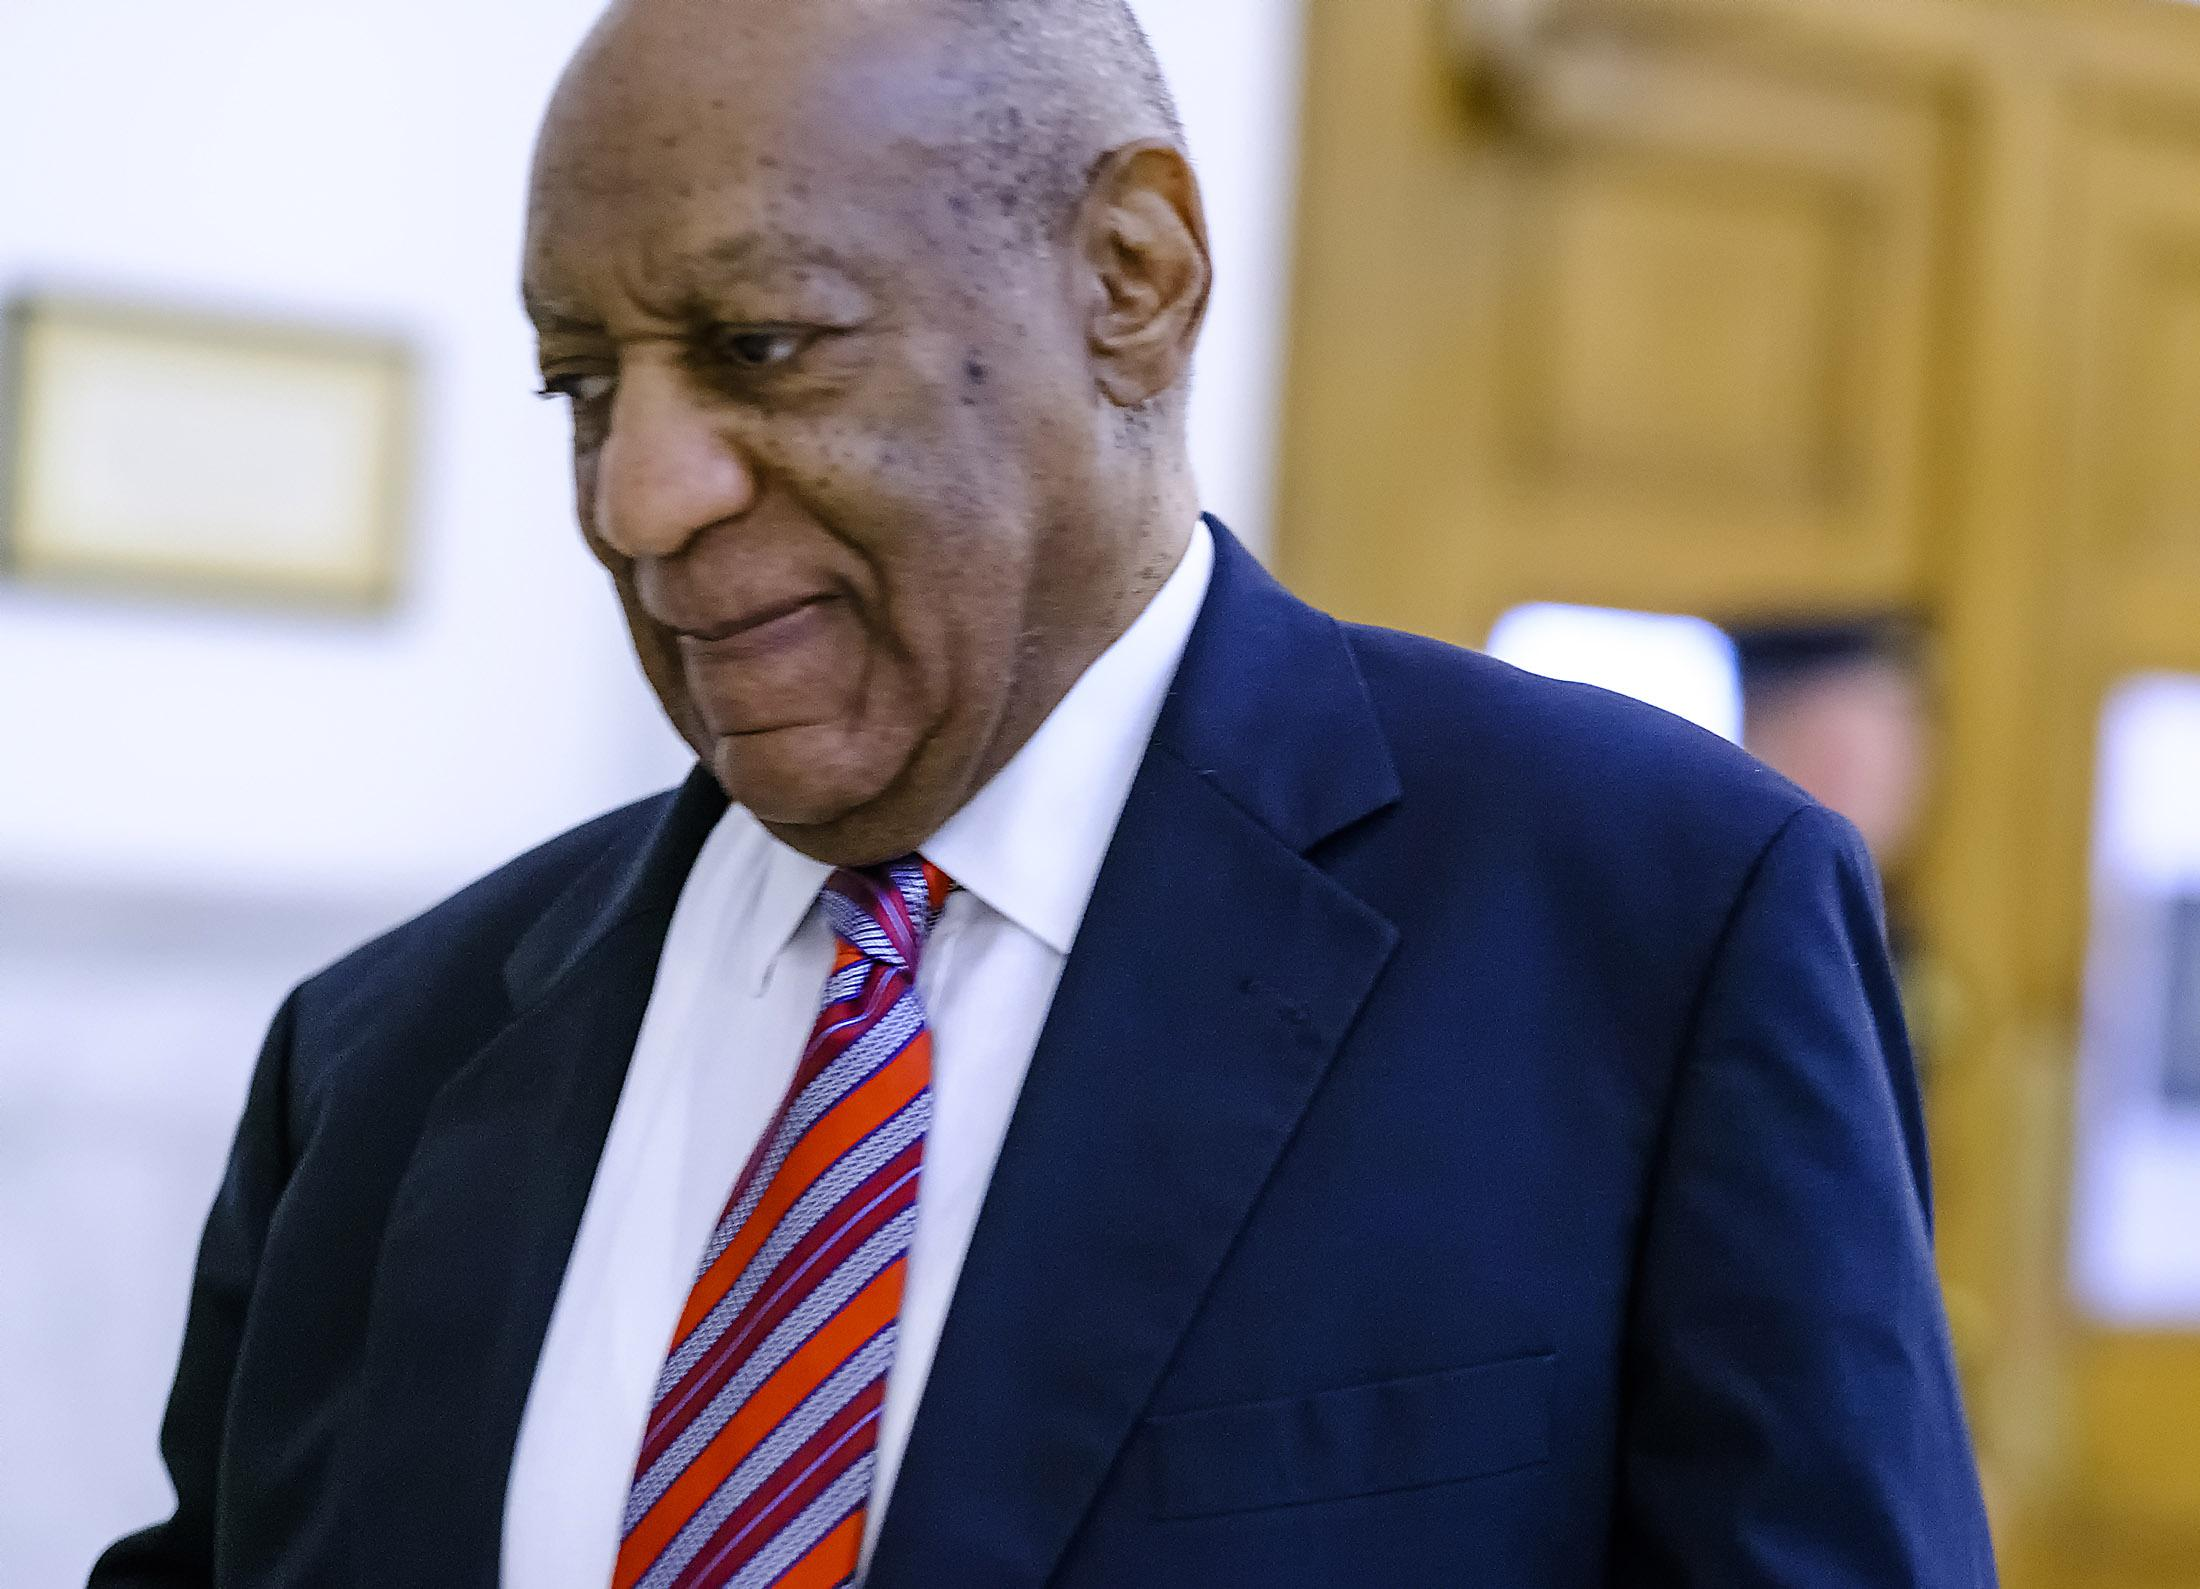 Cosby arrives at courthouse for 4th day of trial